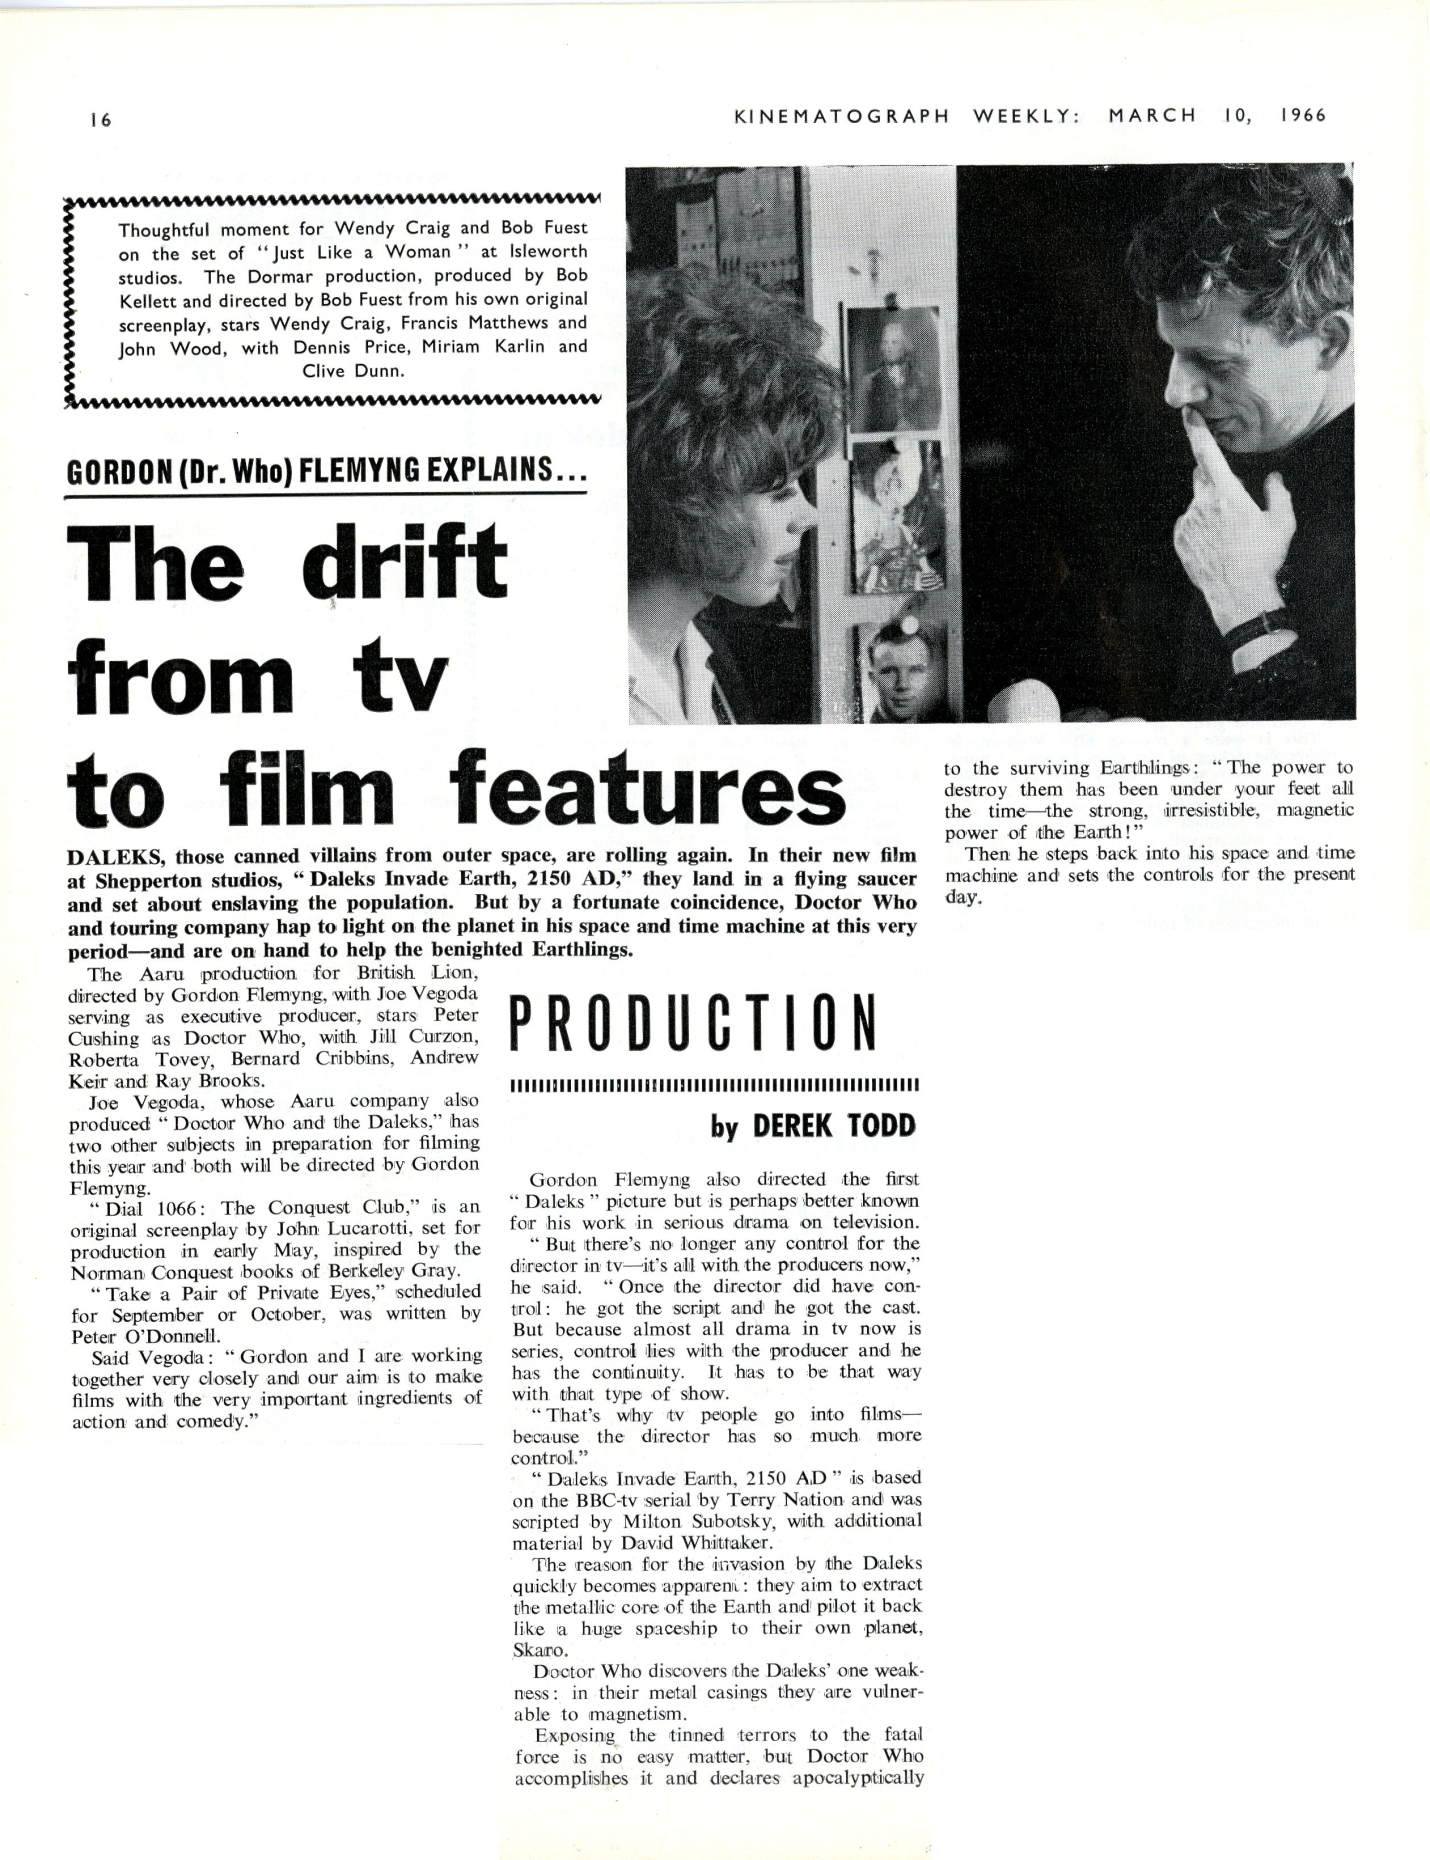 Kine Weekly, 10 March 1966